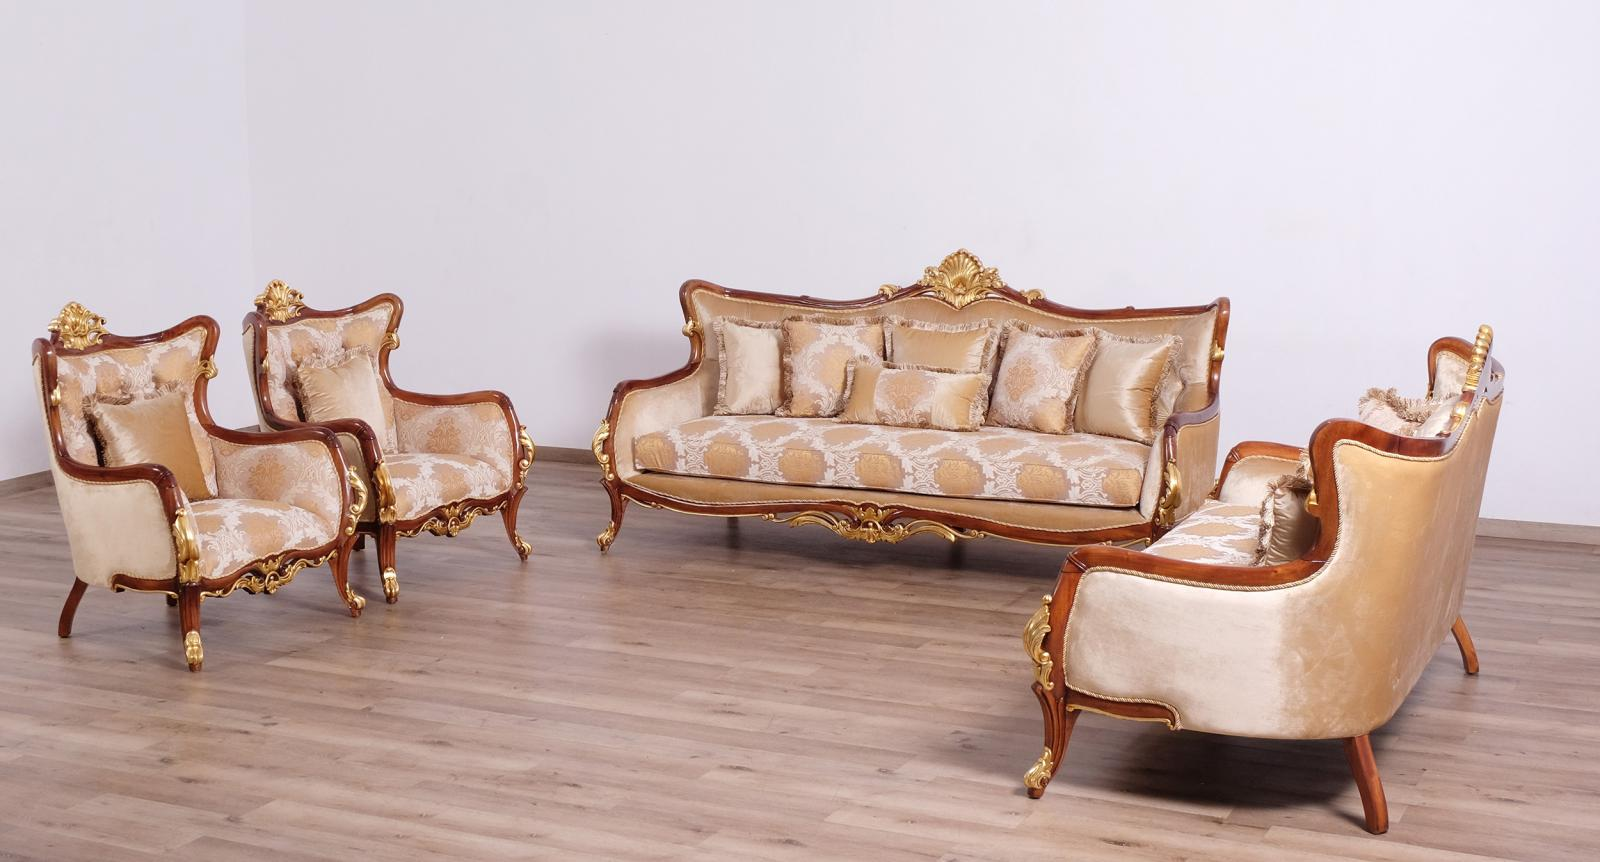 Classic  Traditional Gold  Walnut  Antique Wood  Solid Hardwood and Fabric Sofa Set EUROPEAN FURNITURE 47078-S-Set-4